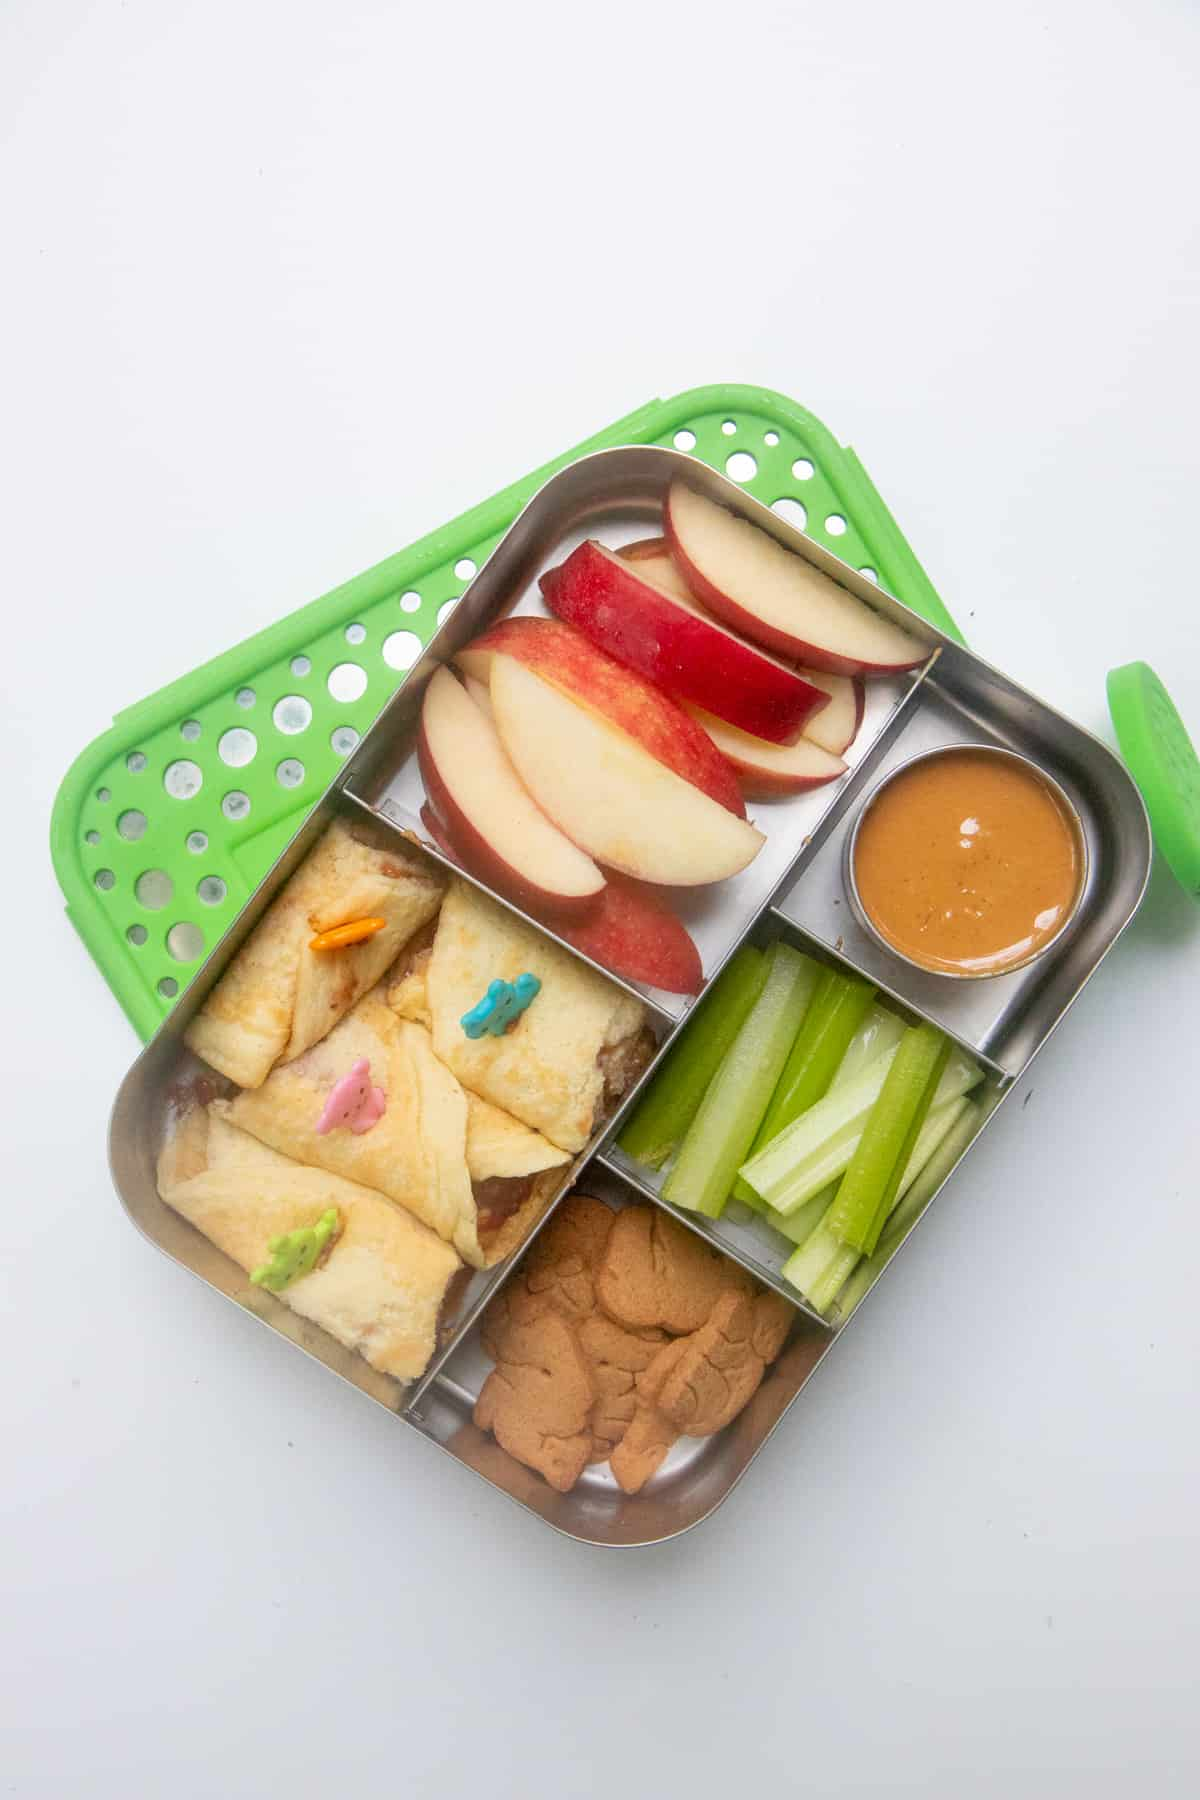 Stainless steel lunch box with pancake roll-ups, apple slices, celery, and animal crackers.